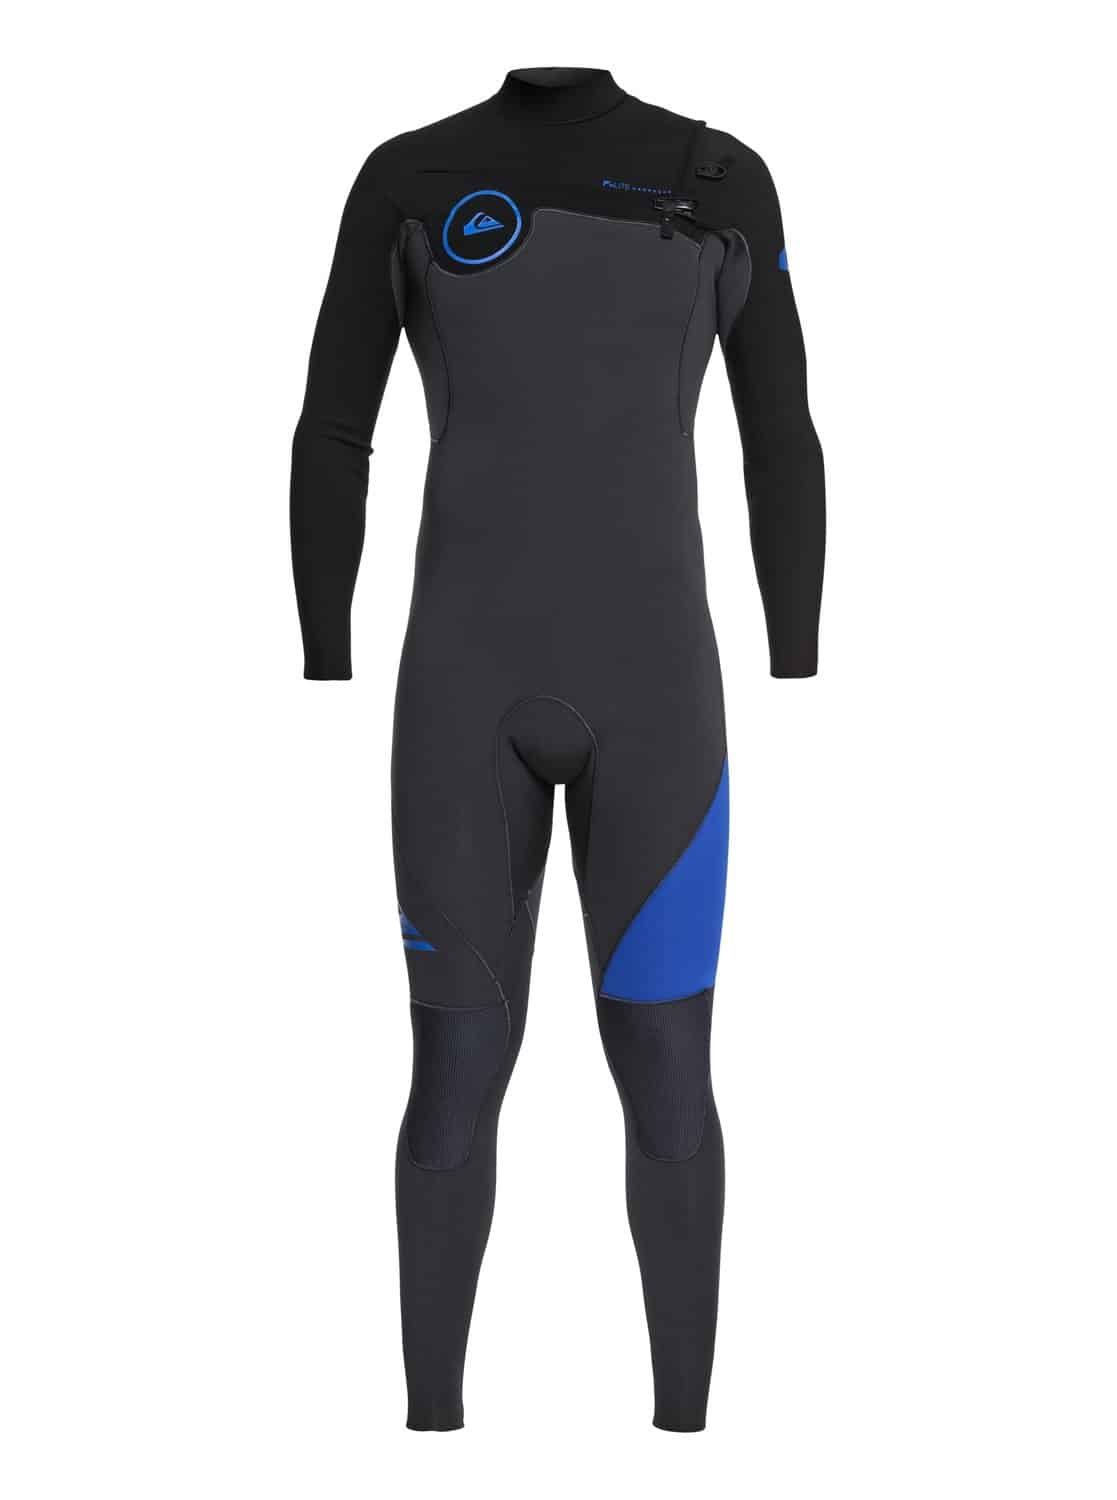 Wetsuit Quiksilver Sychro 3/2mm zwart _32syncroseriescz